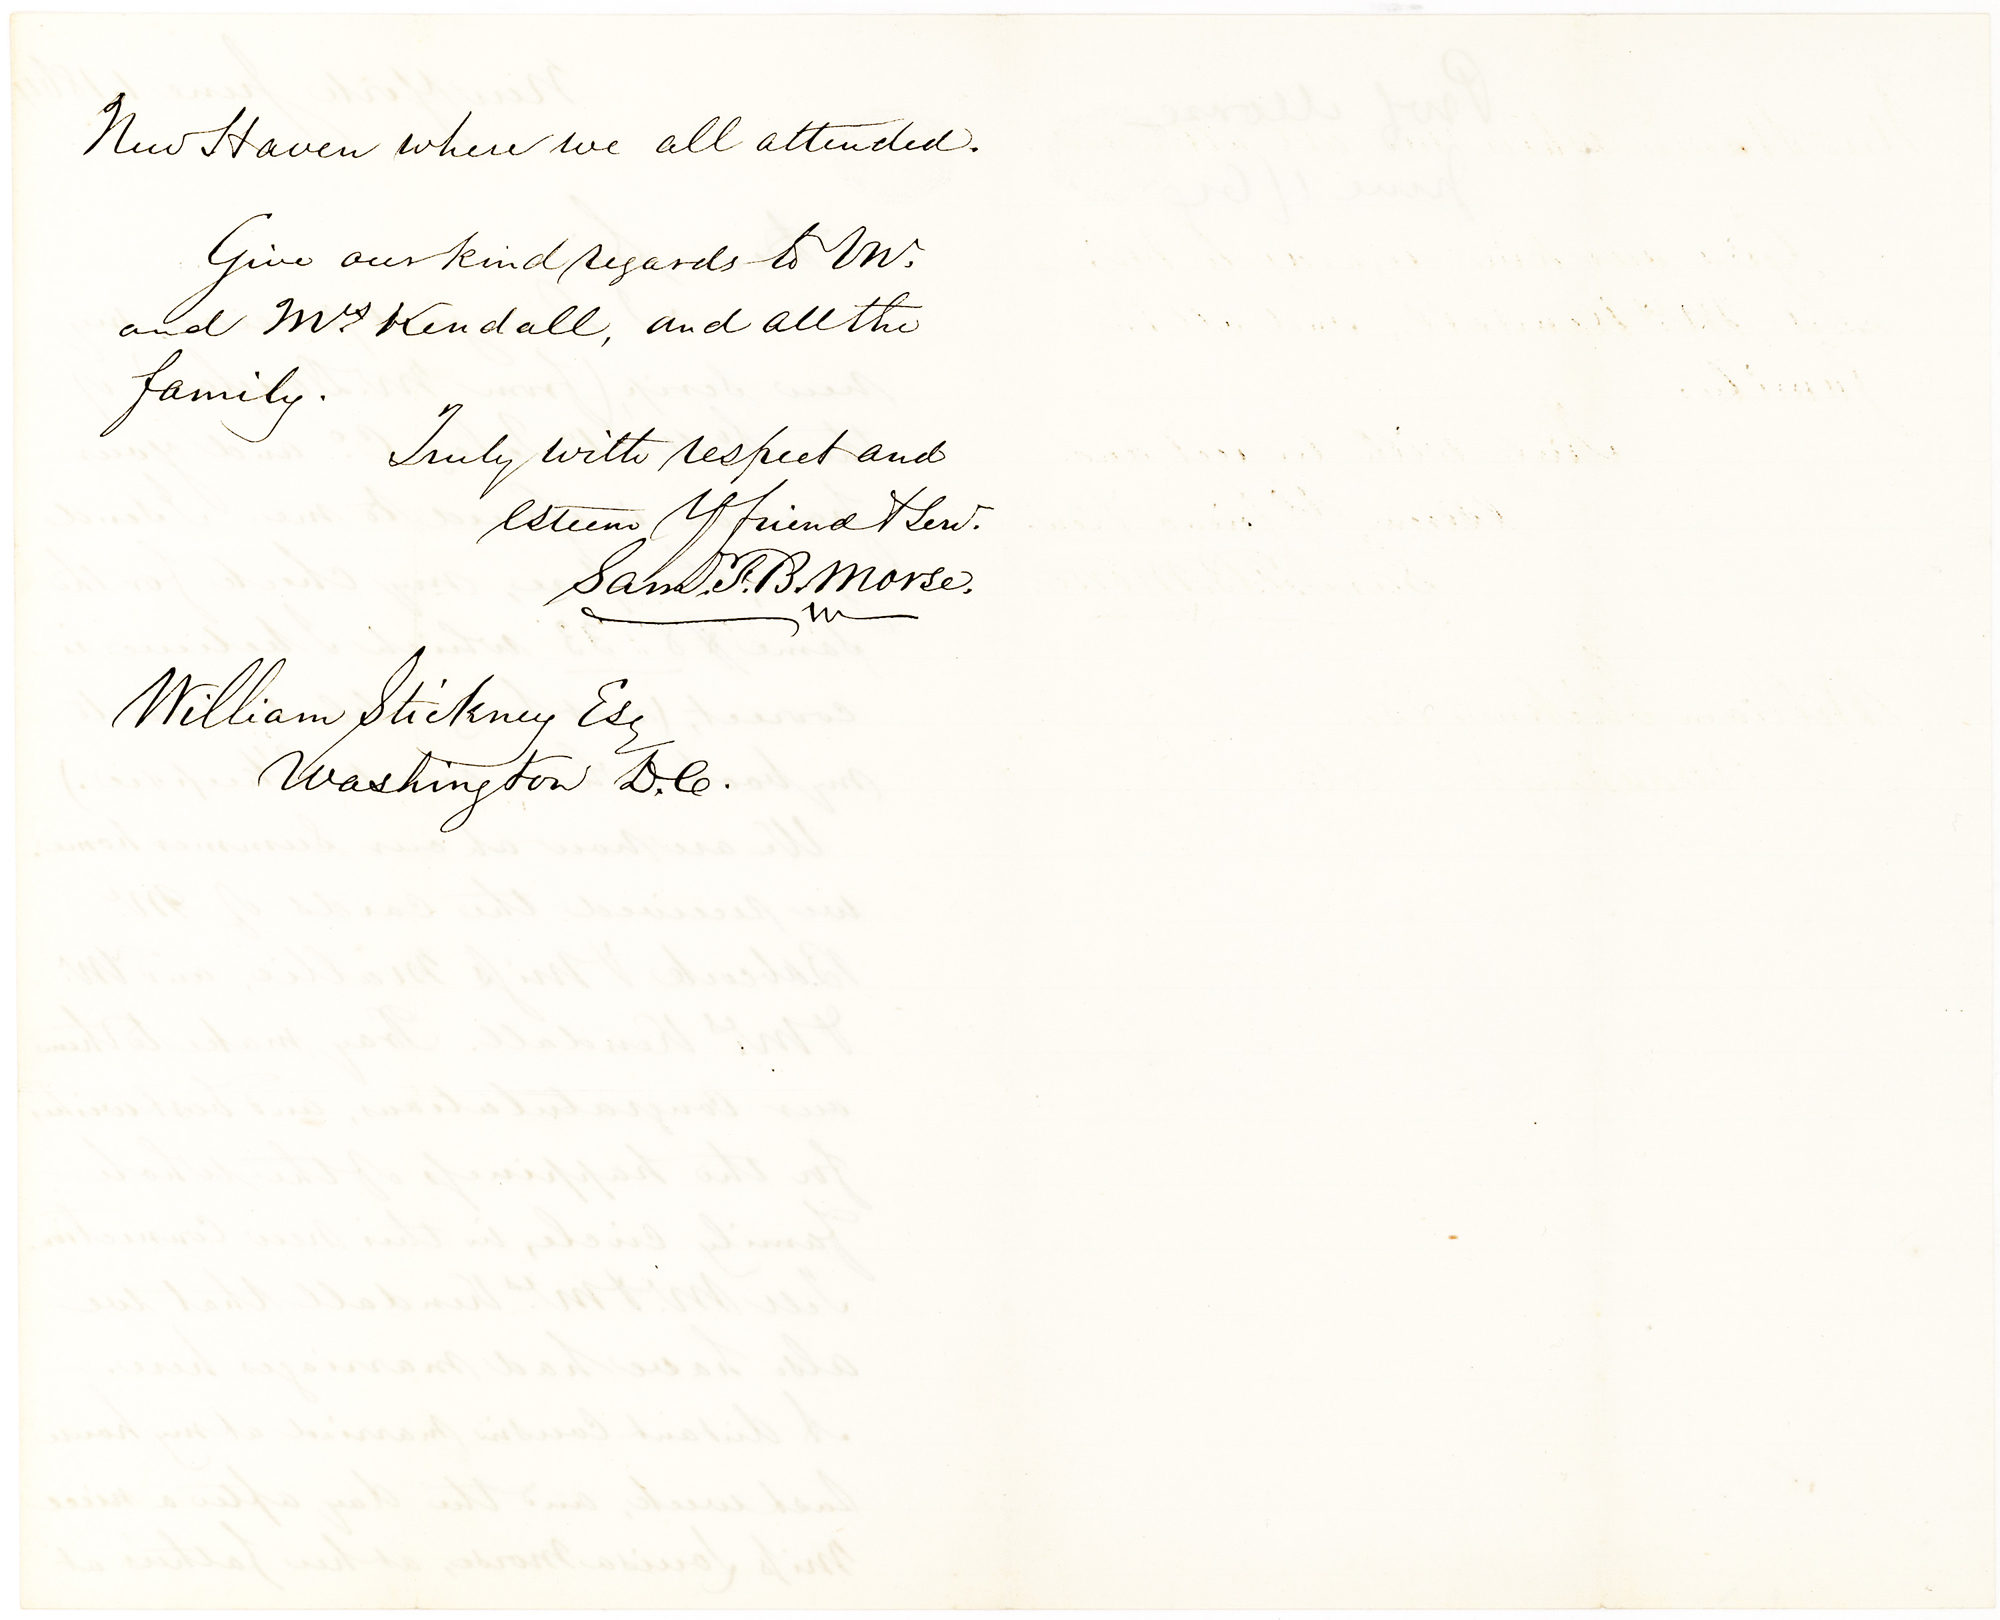 Satisfaction Of Morte Form | Autograph Letter Signed By The Inventor Of The Telegraph About Money